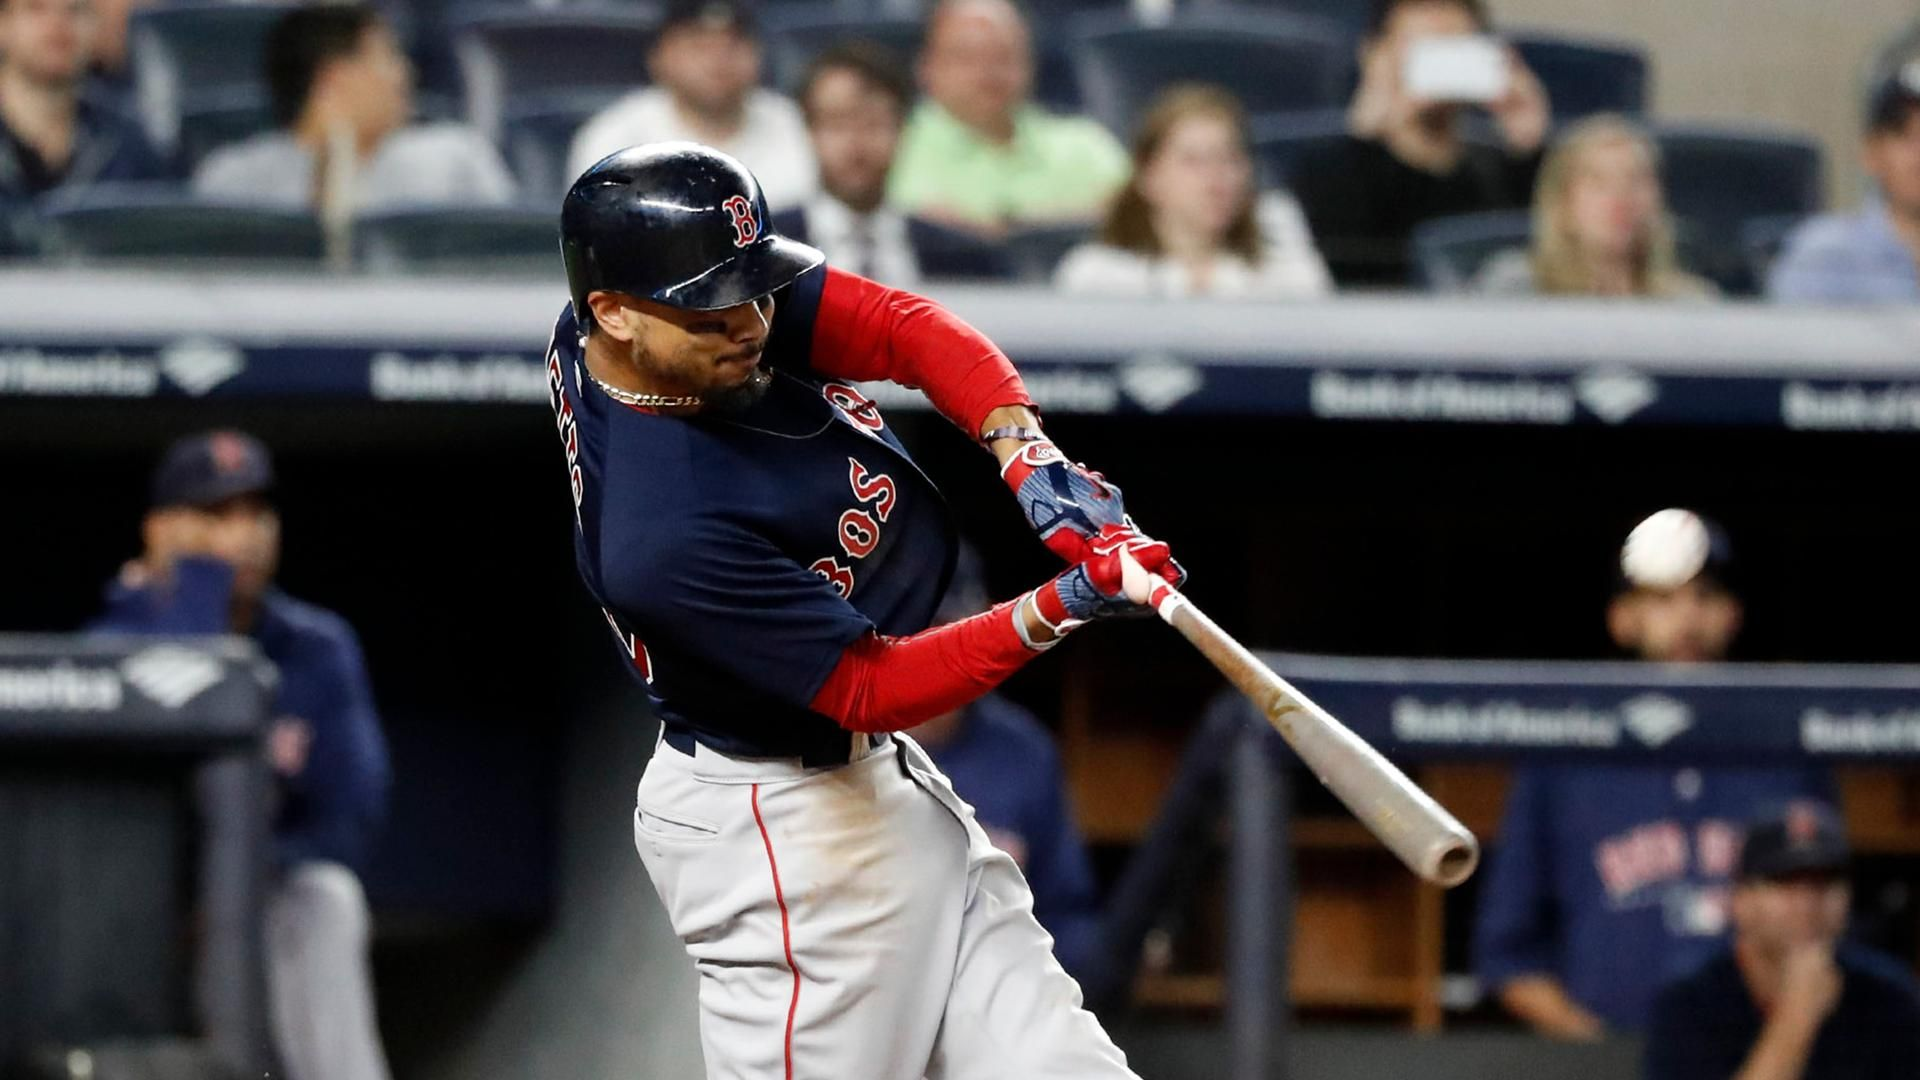 This Was Goal No 1 Red Sox Clinch Third Straight Al East Title The Boston Globe Boston Red Sox Red Sox New York Yankees